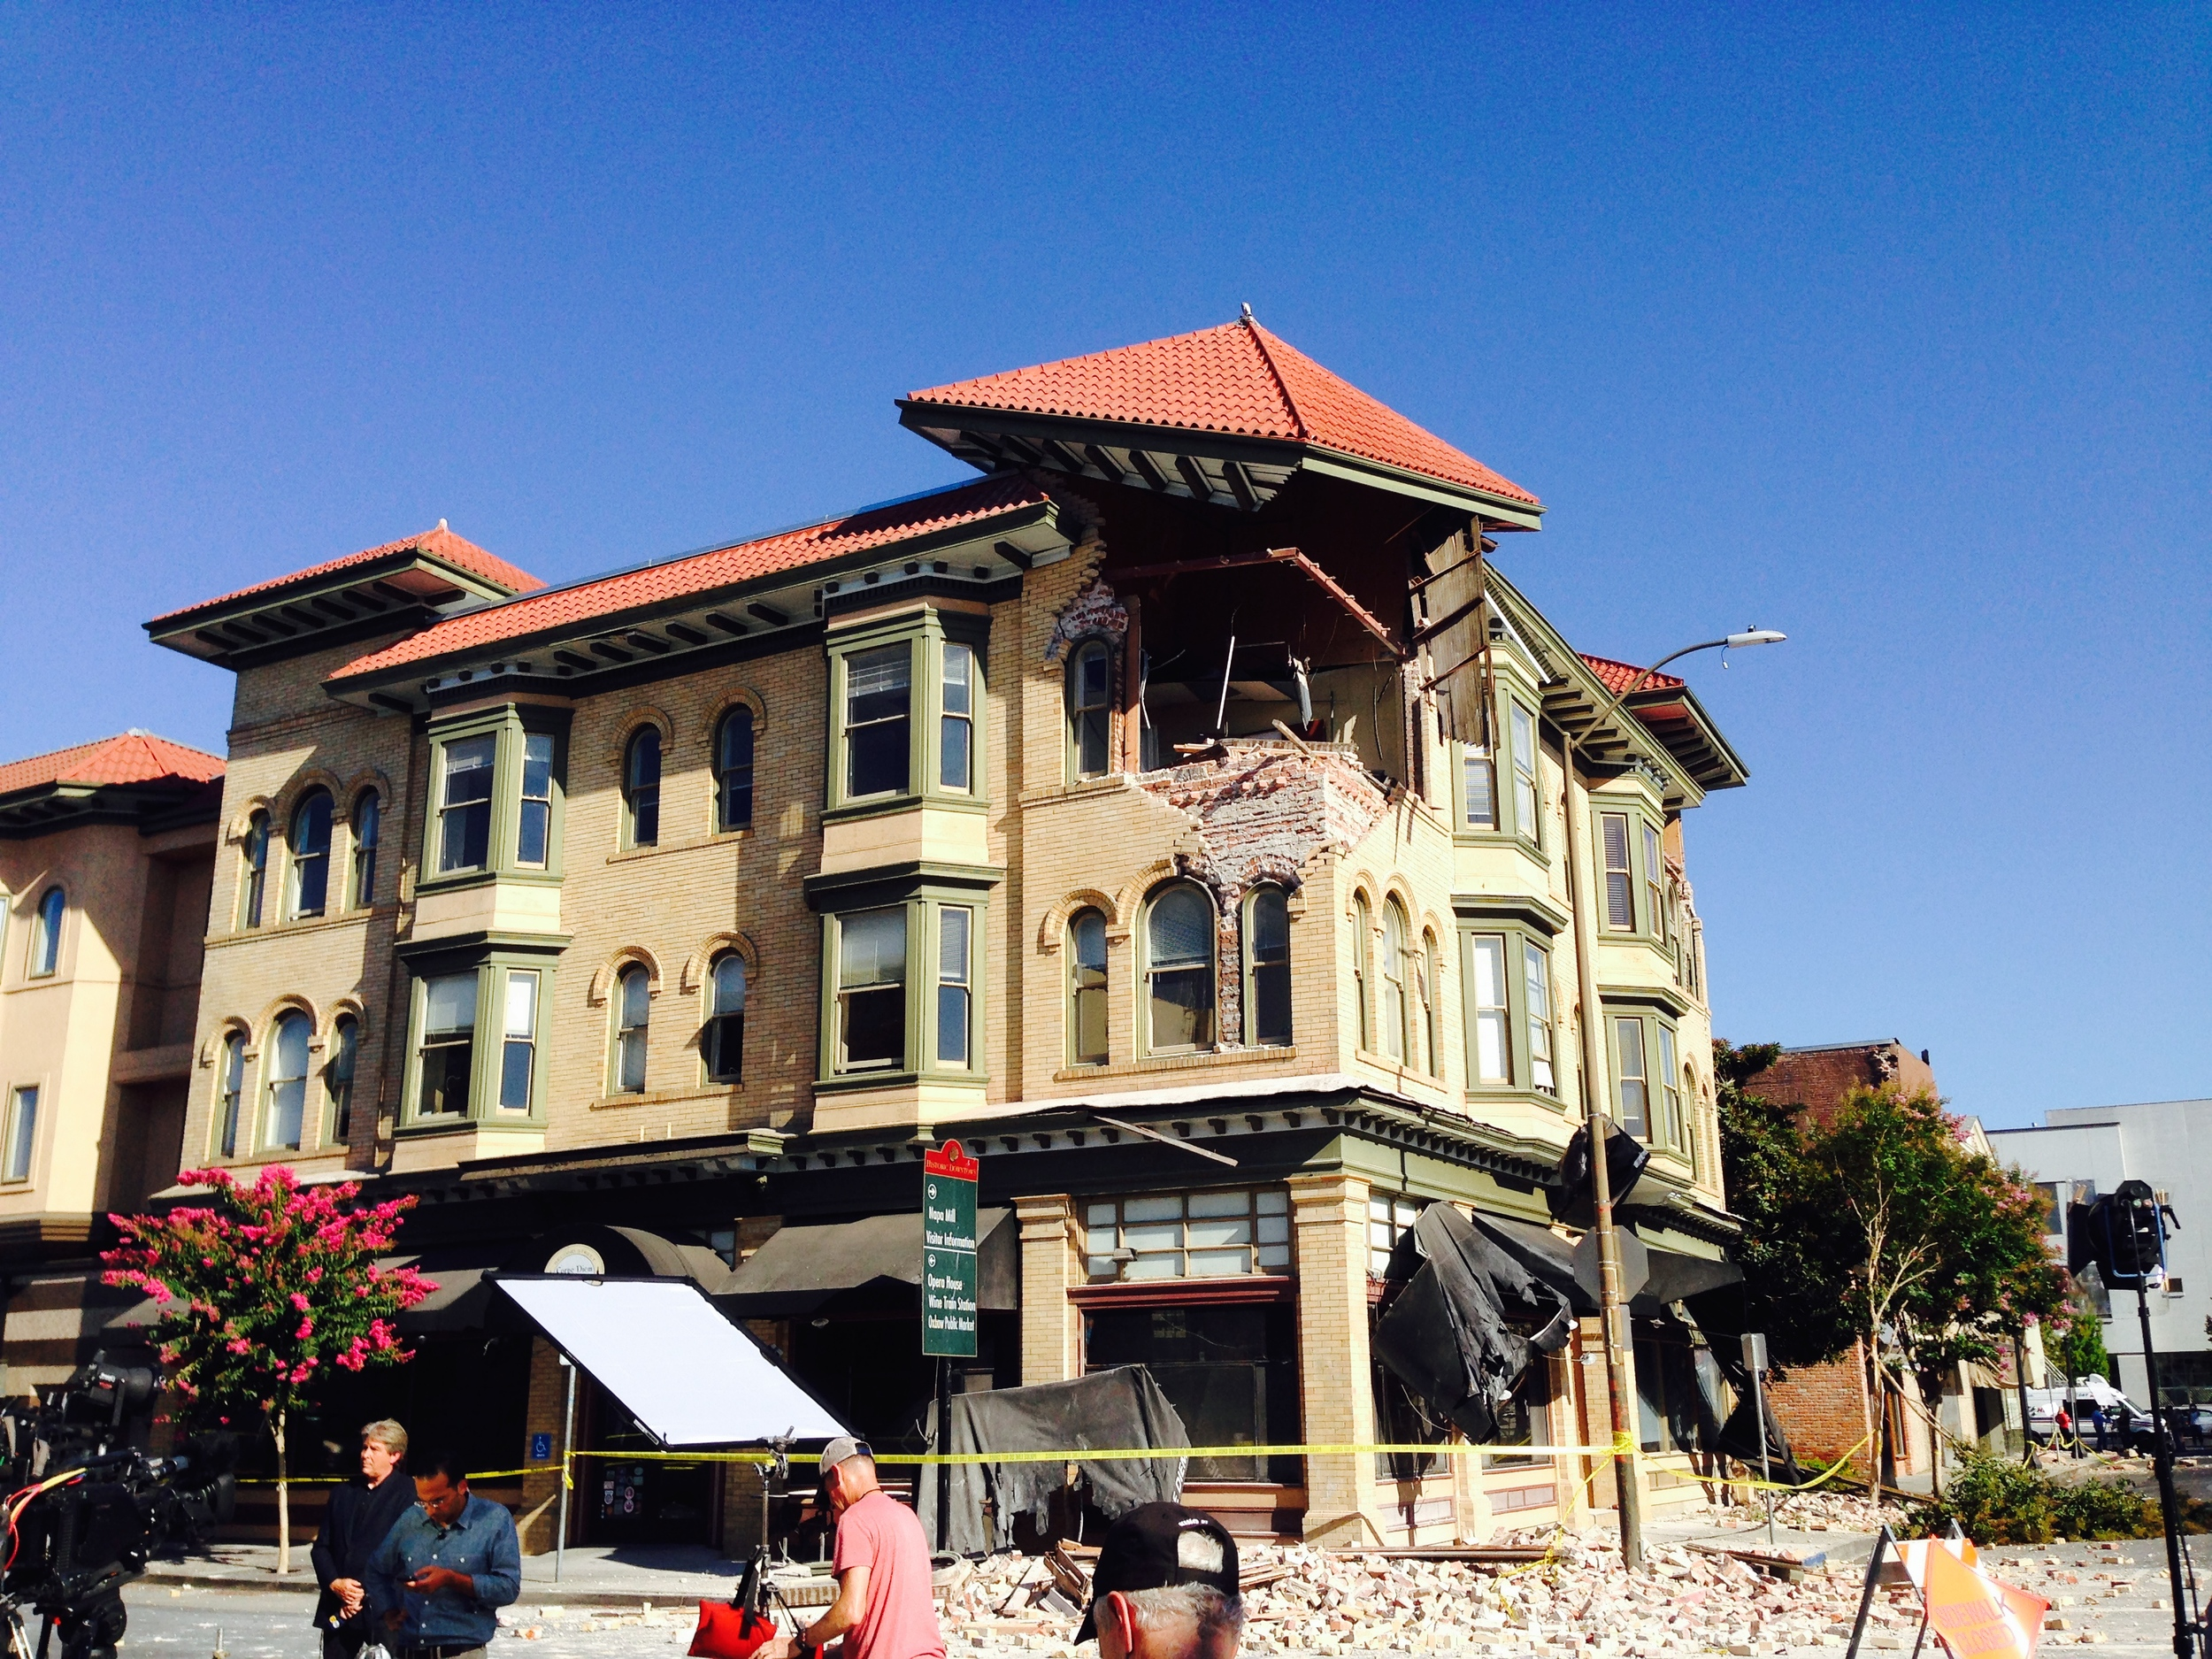 The building housing Carpe Diem Restaurant in downtown Napa, CA lost a big chunk of its second and third story in the quake.